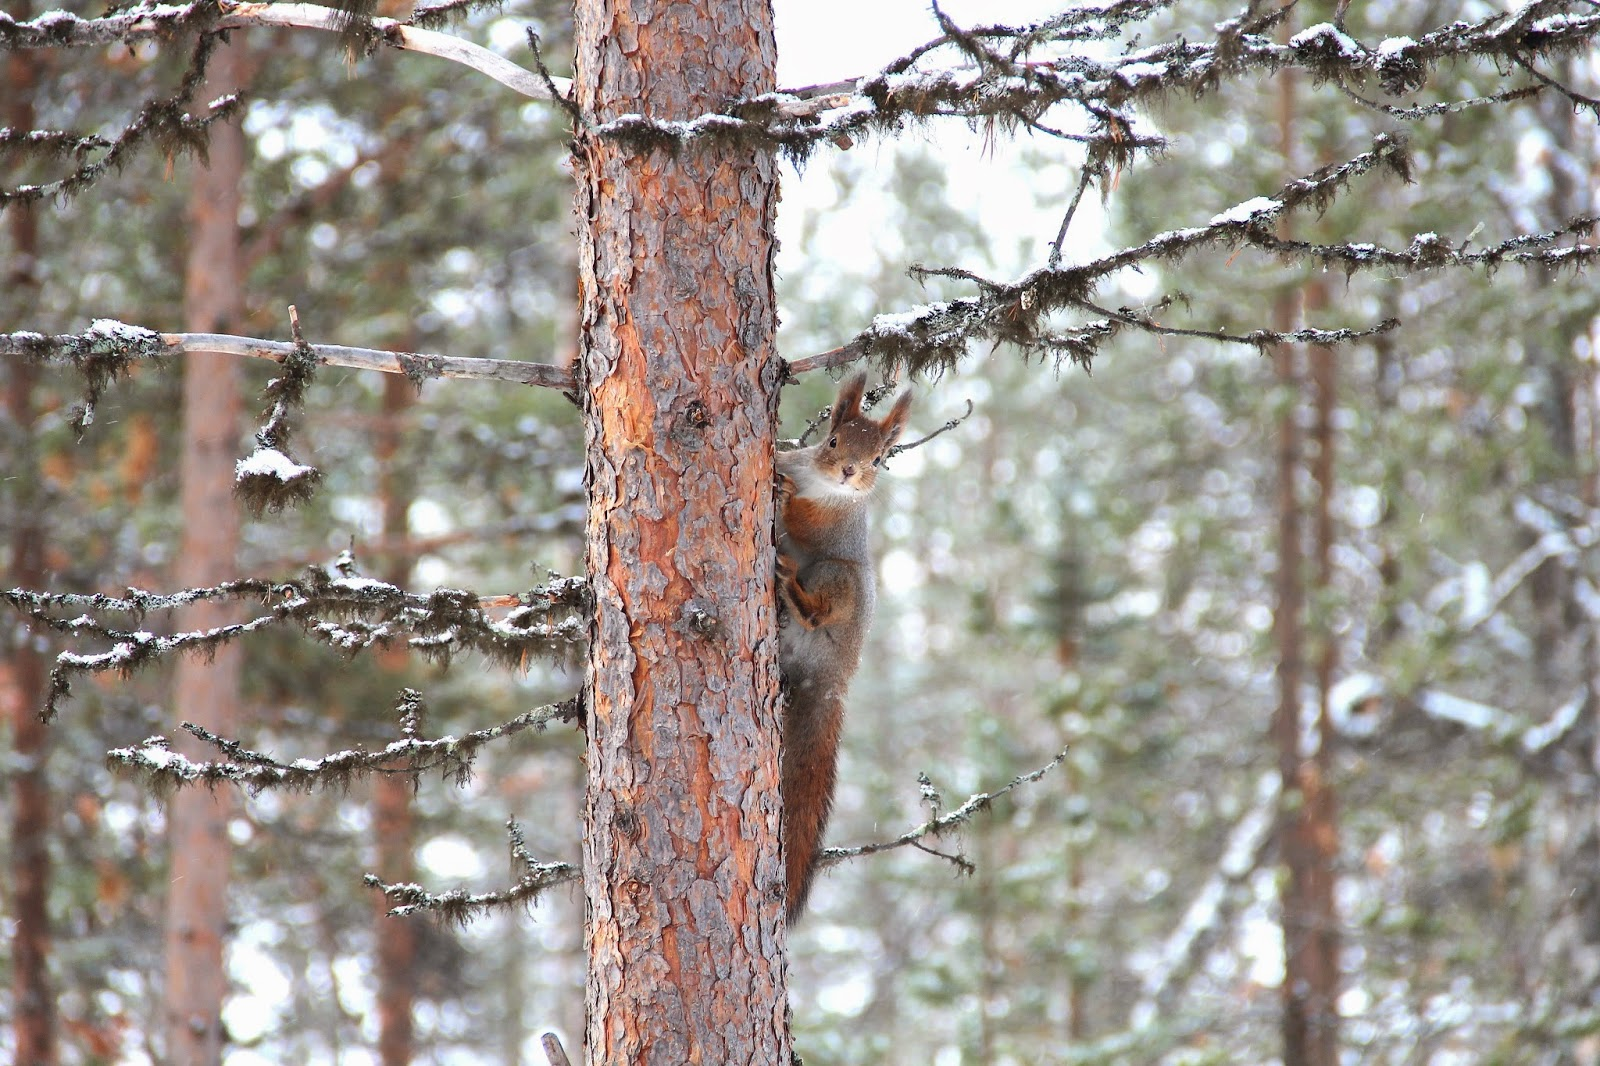 Squirrel on a Tree, Finland